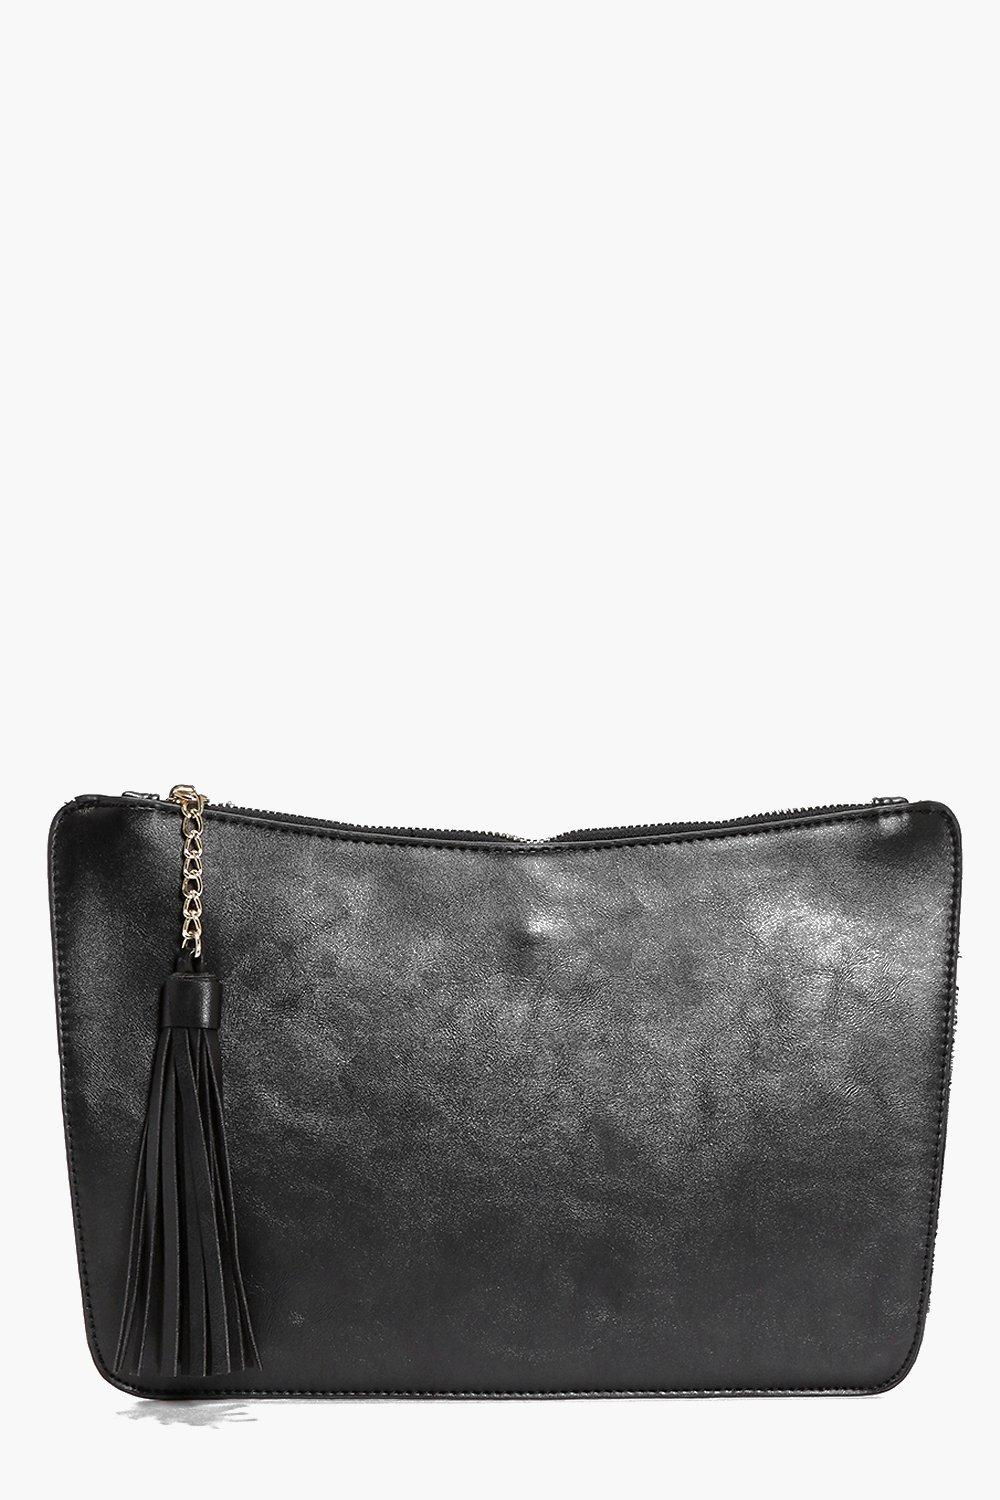 Curve Zip Tassel Clutch Bag black